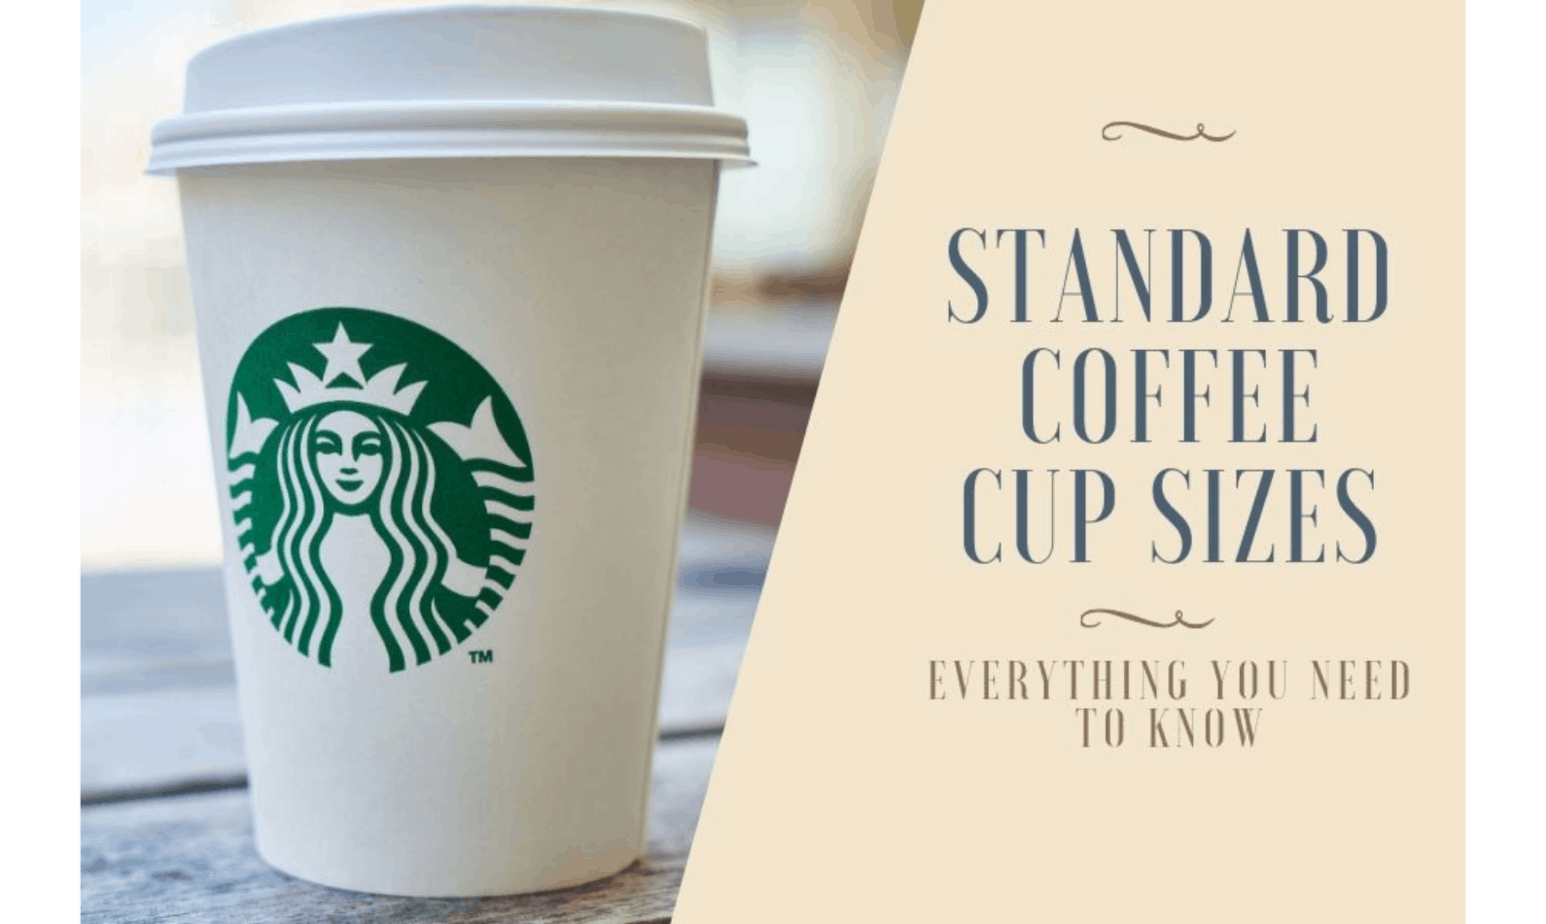 Standard Coffee Cup Sizes